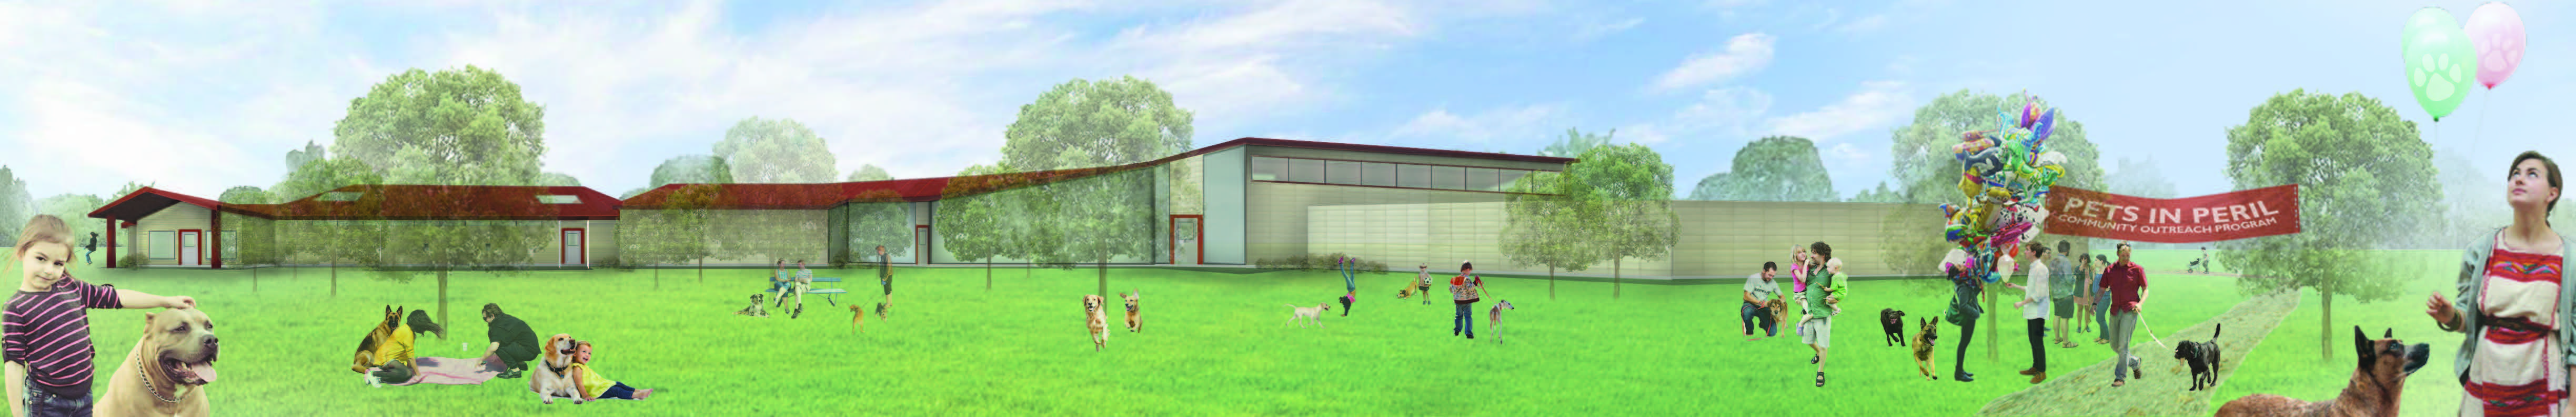 Animal Shelter Rendering